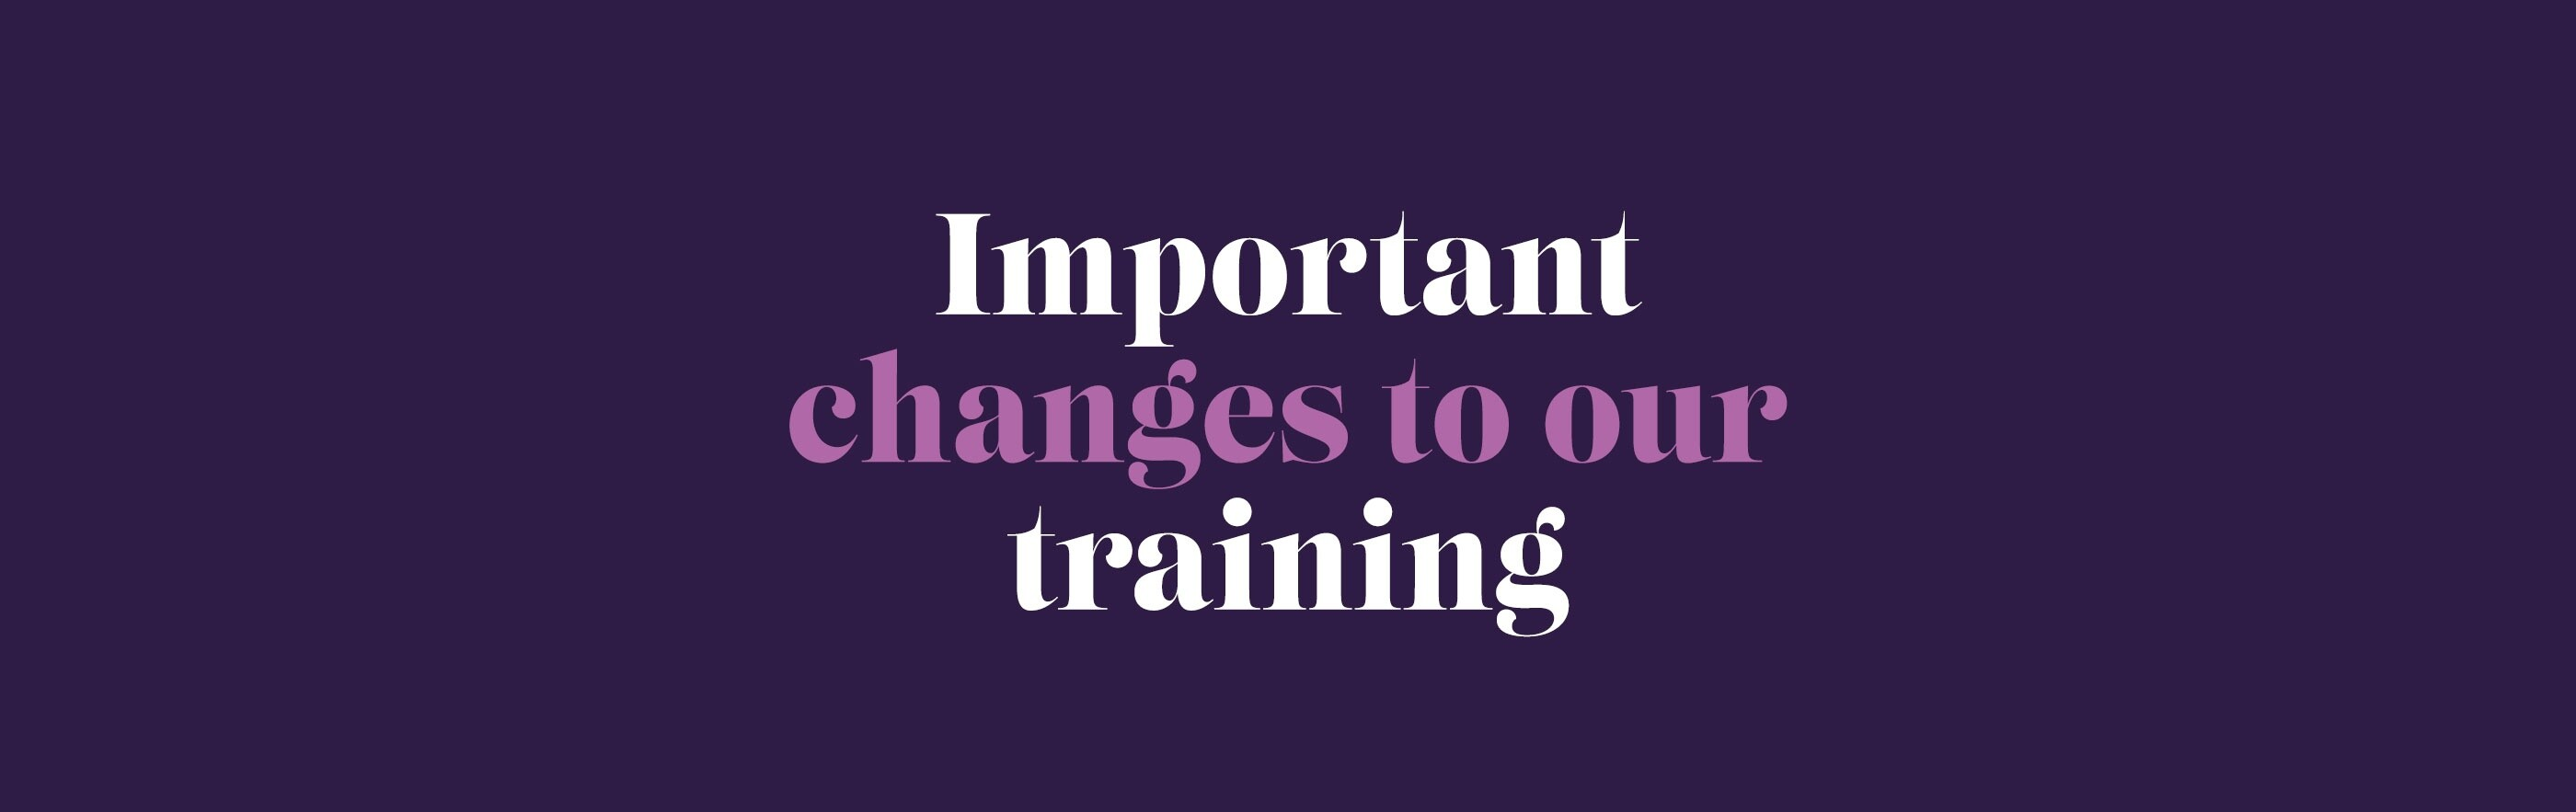 Changes to our training